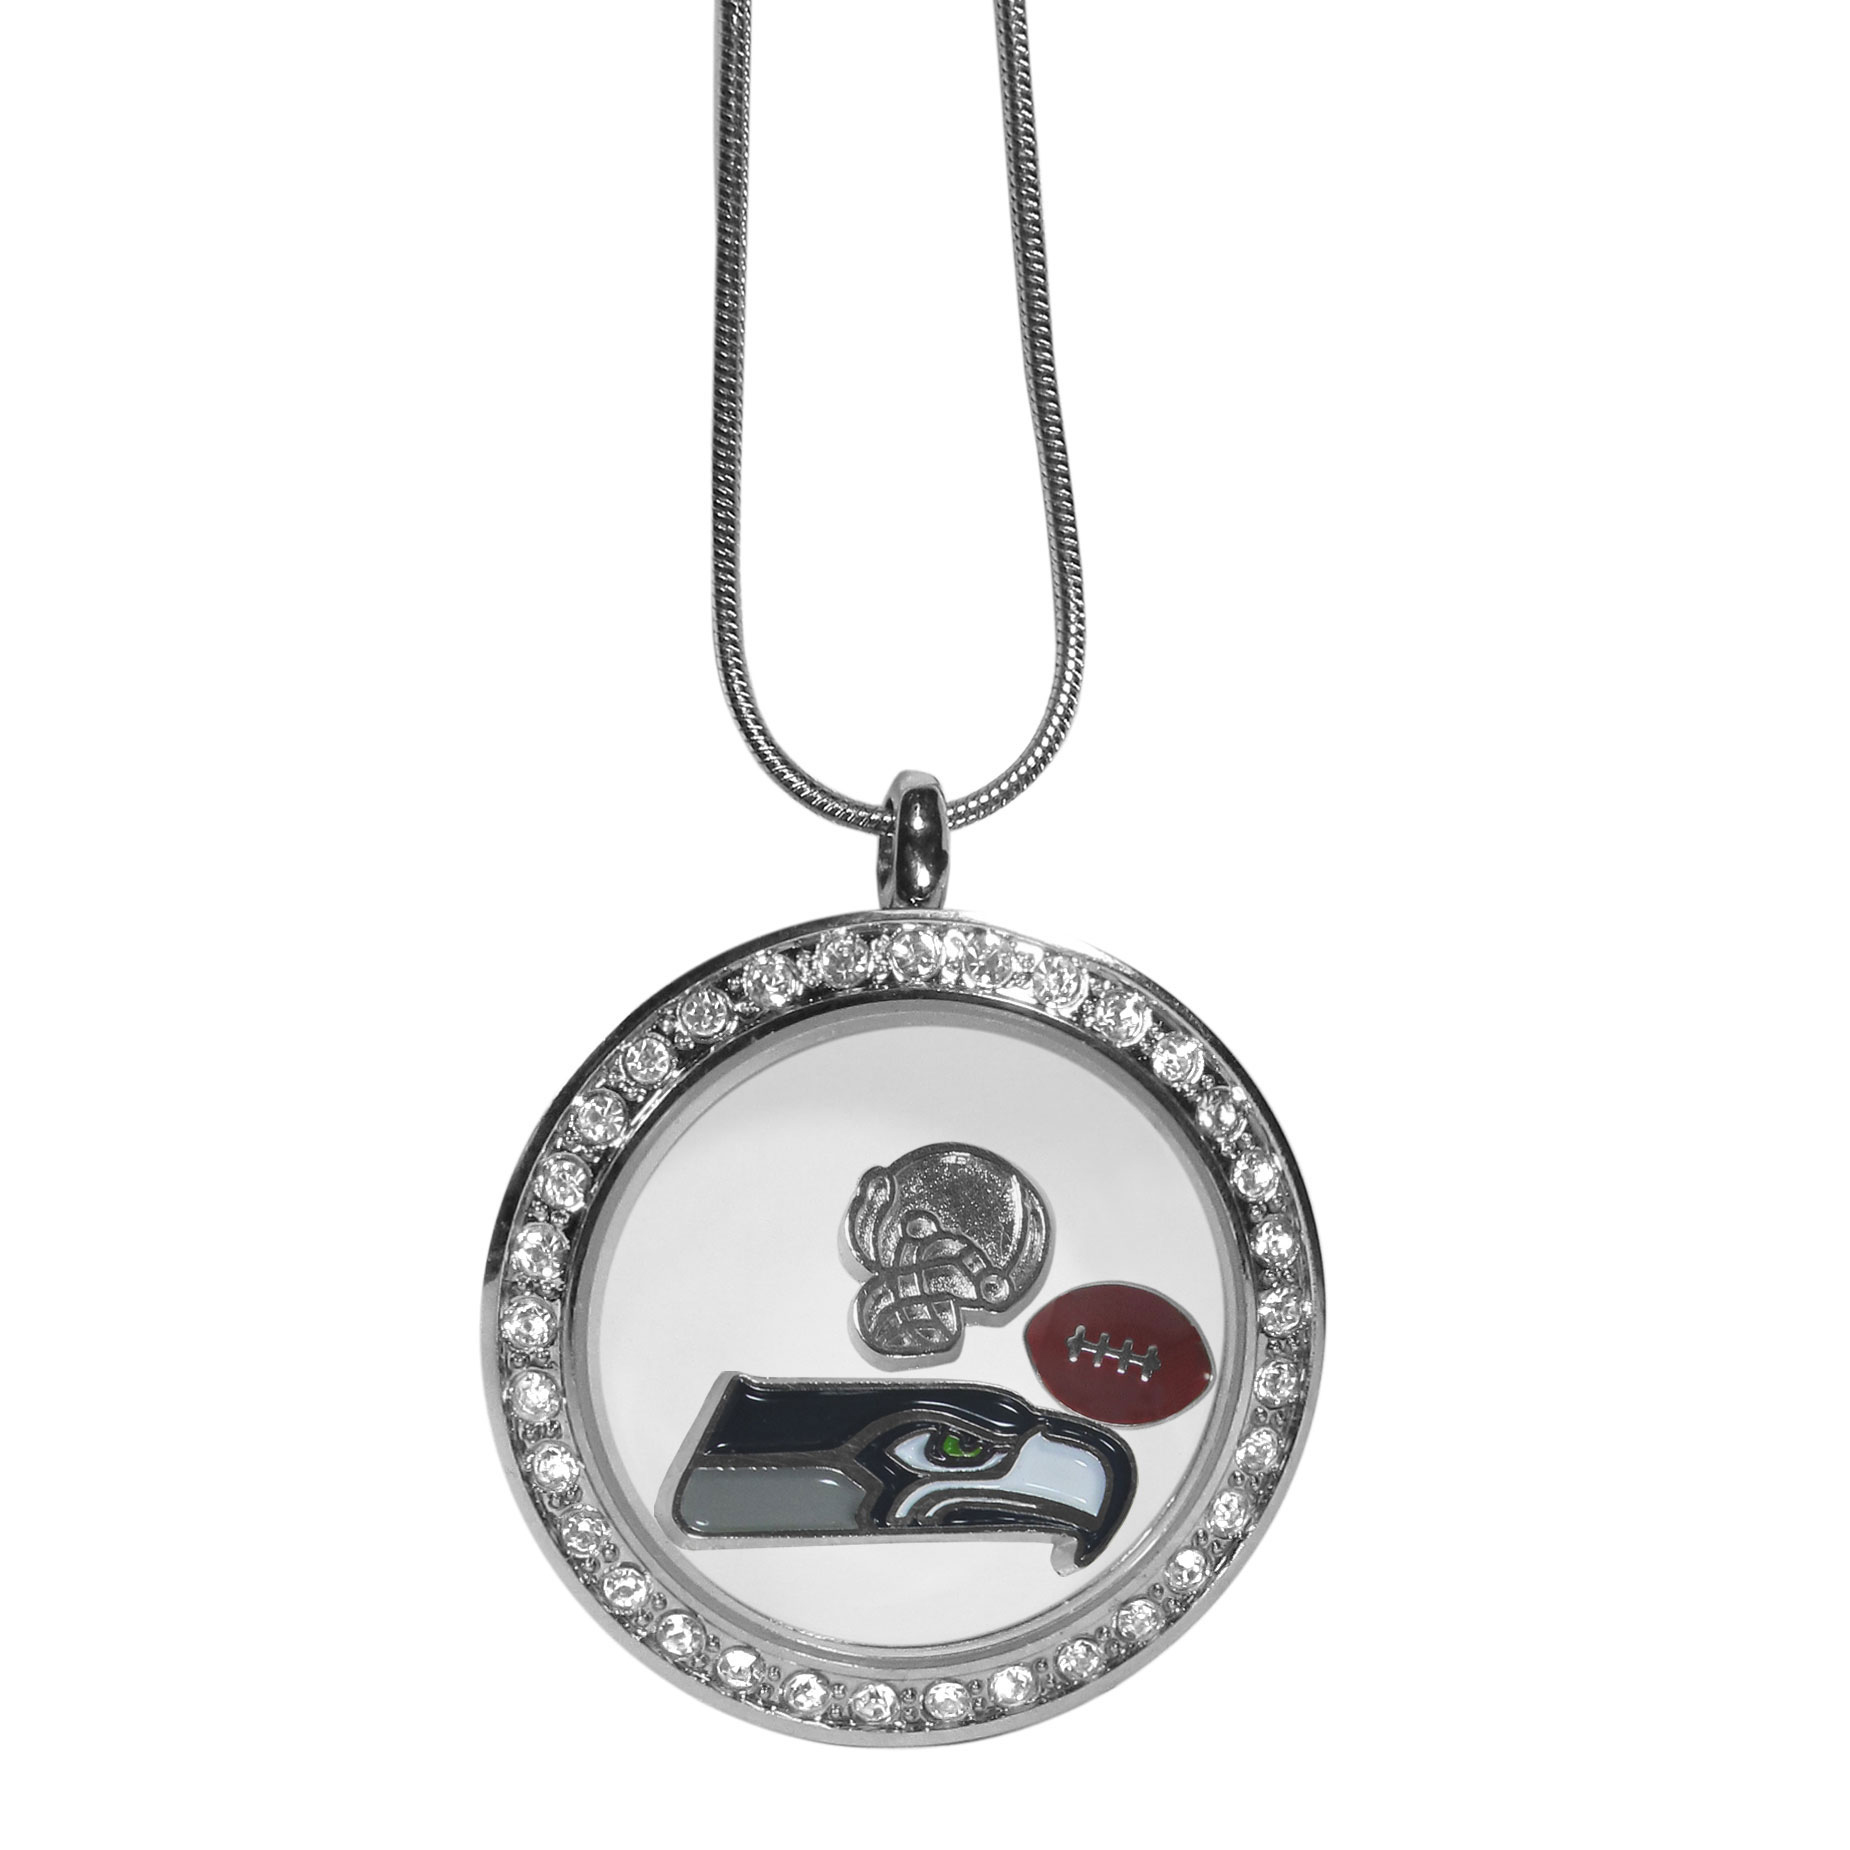 Seattle Seahawks Locket Necklace - We have taken the classic floating charm locket and combined with licensed sports charms to create a must have fan necklace. The necklace comes with 3 charms; 1 Seattle Seahawks charm, one football charm and one helmet charm. The charms float in a beautiful locket that has a strong magnetic closure with a rhinestone border. The locket comes on an 18 inch snake chain with 2 inch extender.